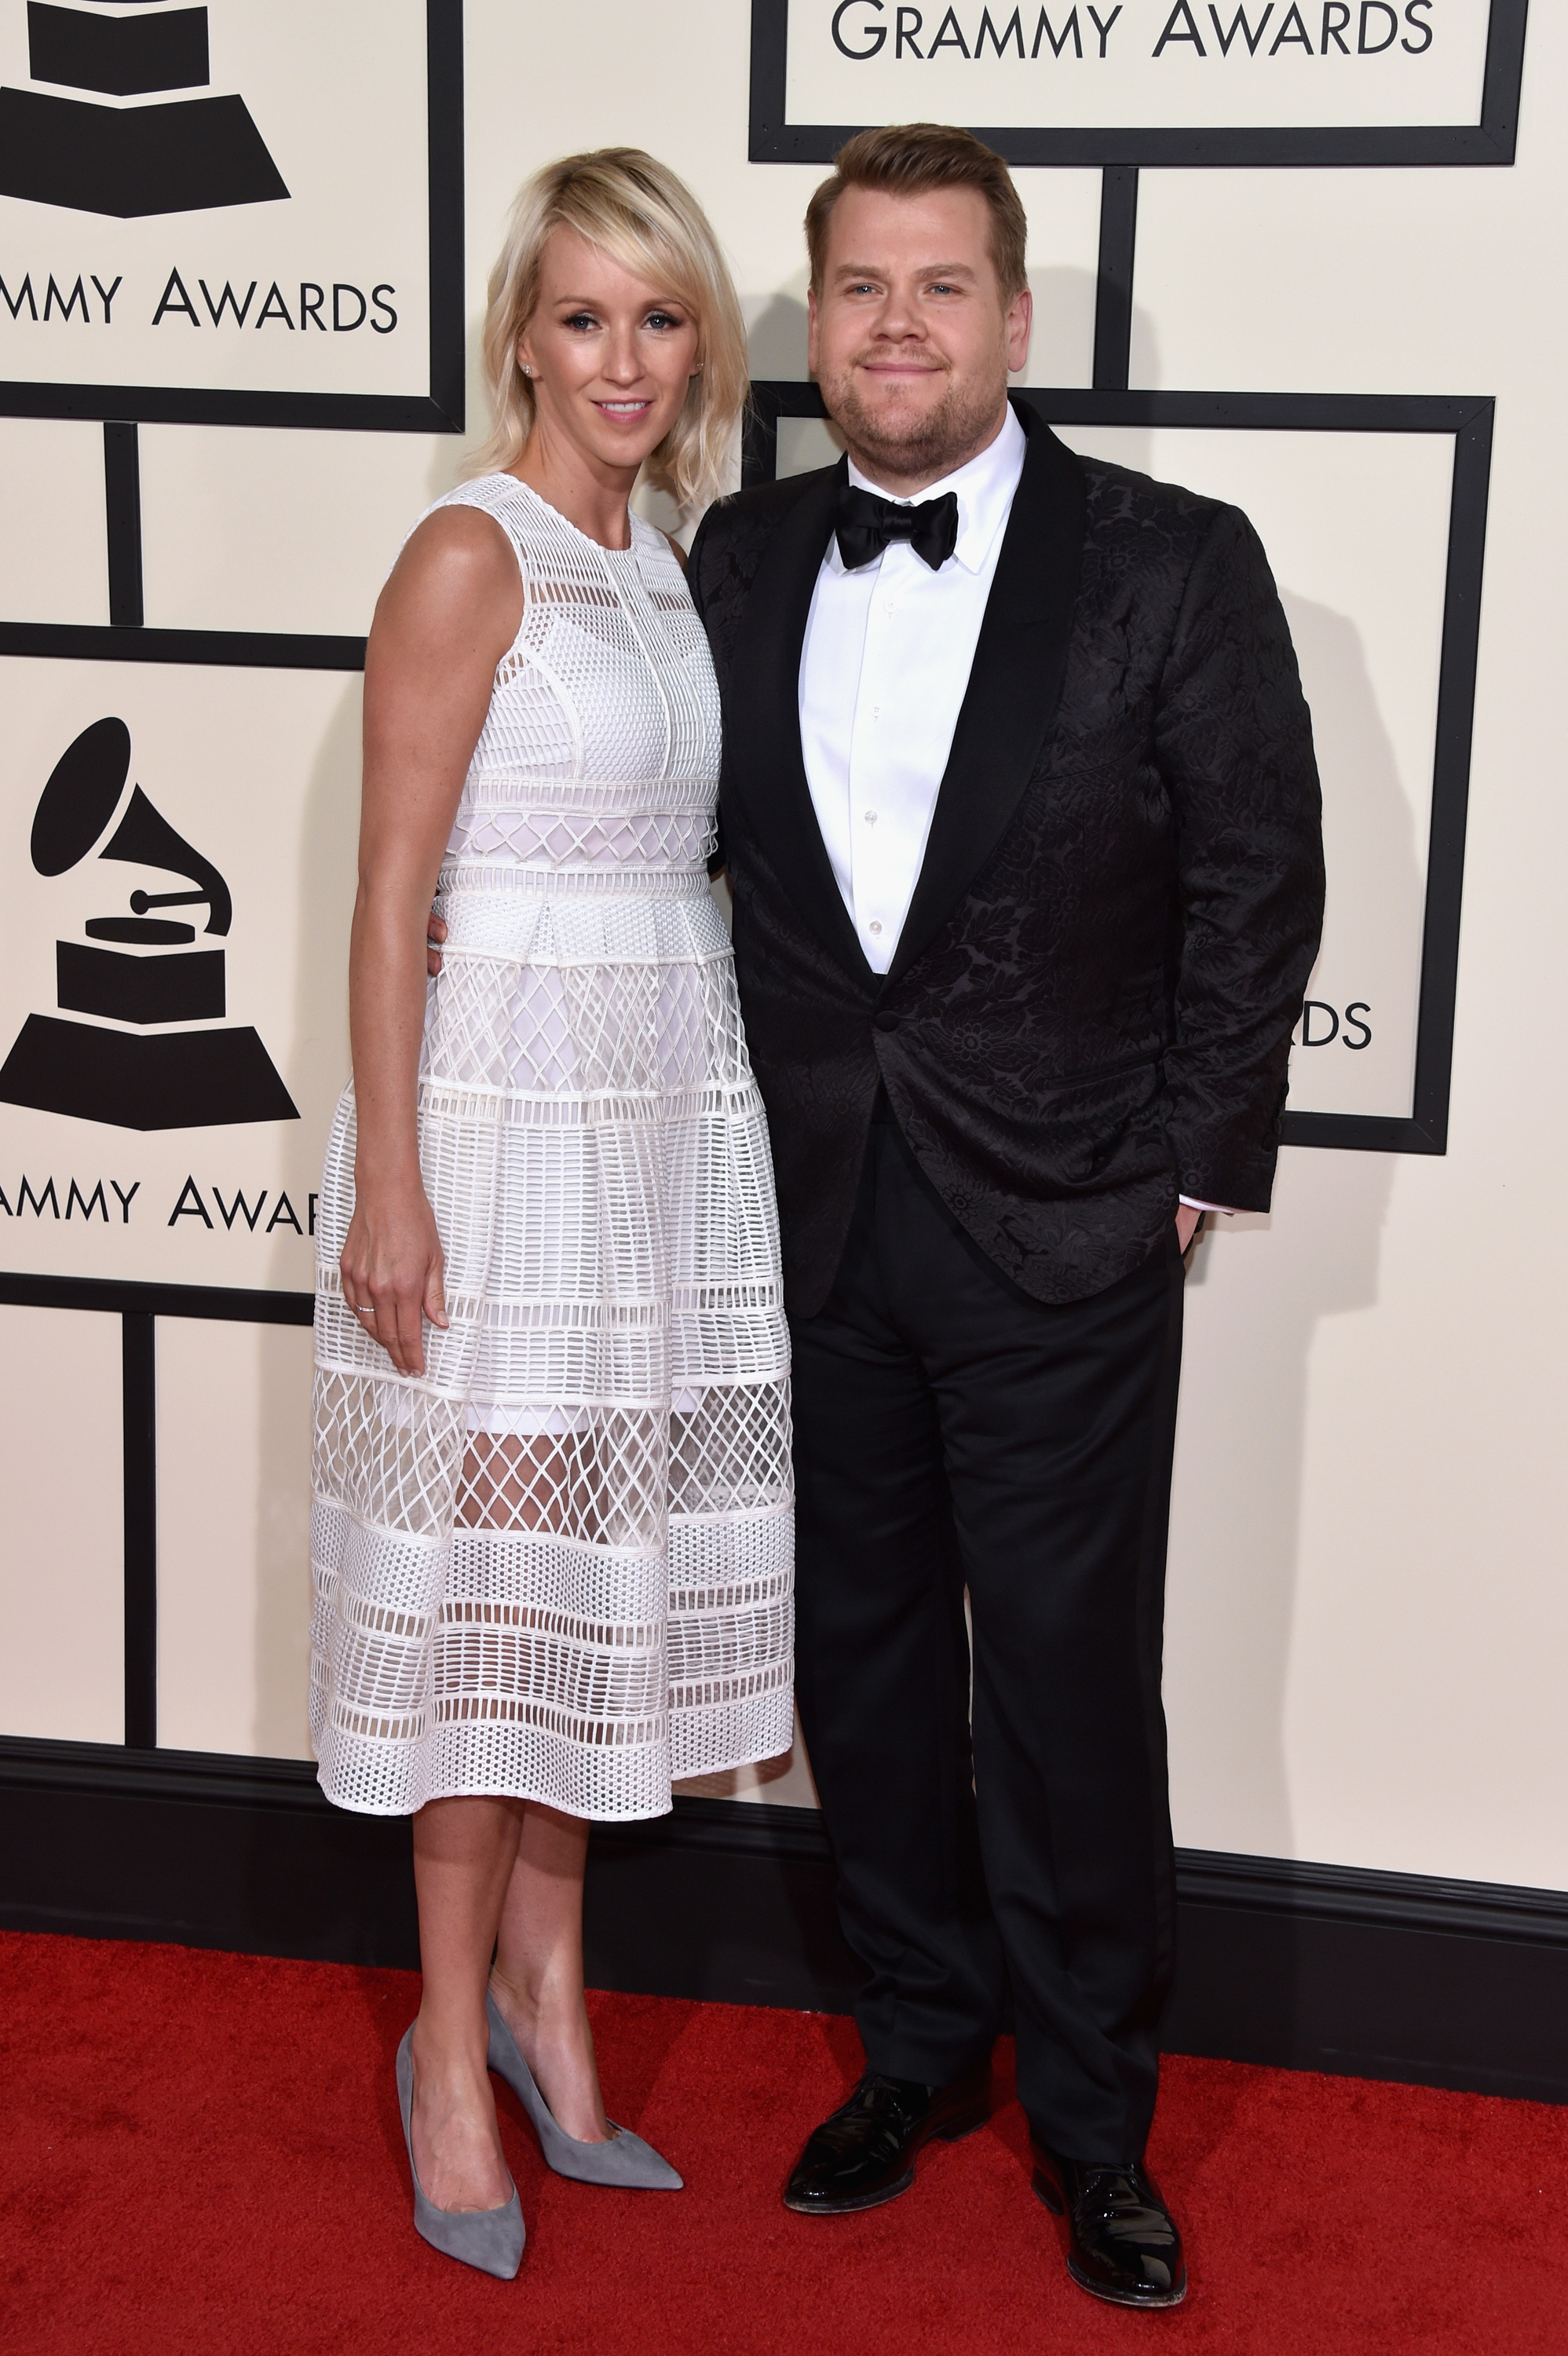 Julia Carey, left, and James Corden, right, attend the 58th GRAMMY Awards at Staples Center on Feb. 15, 2016 in Los Angeles.